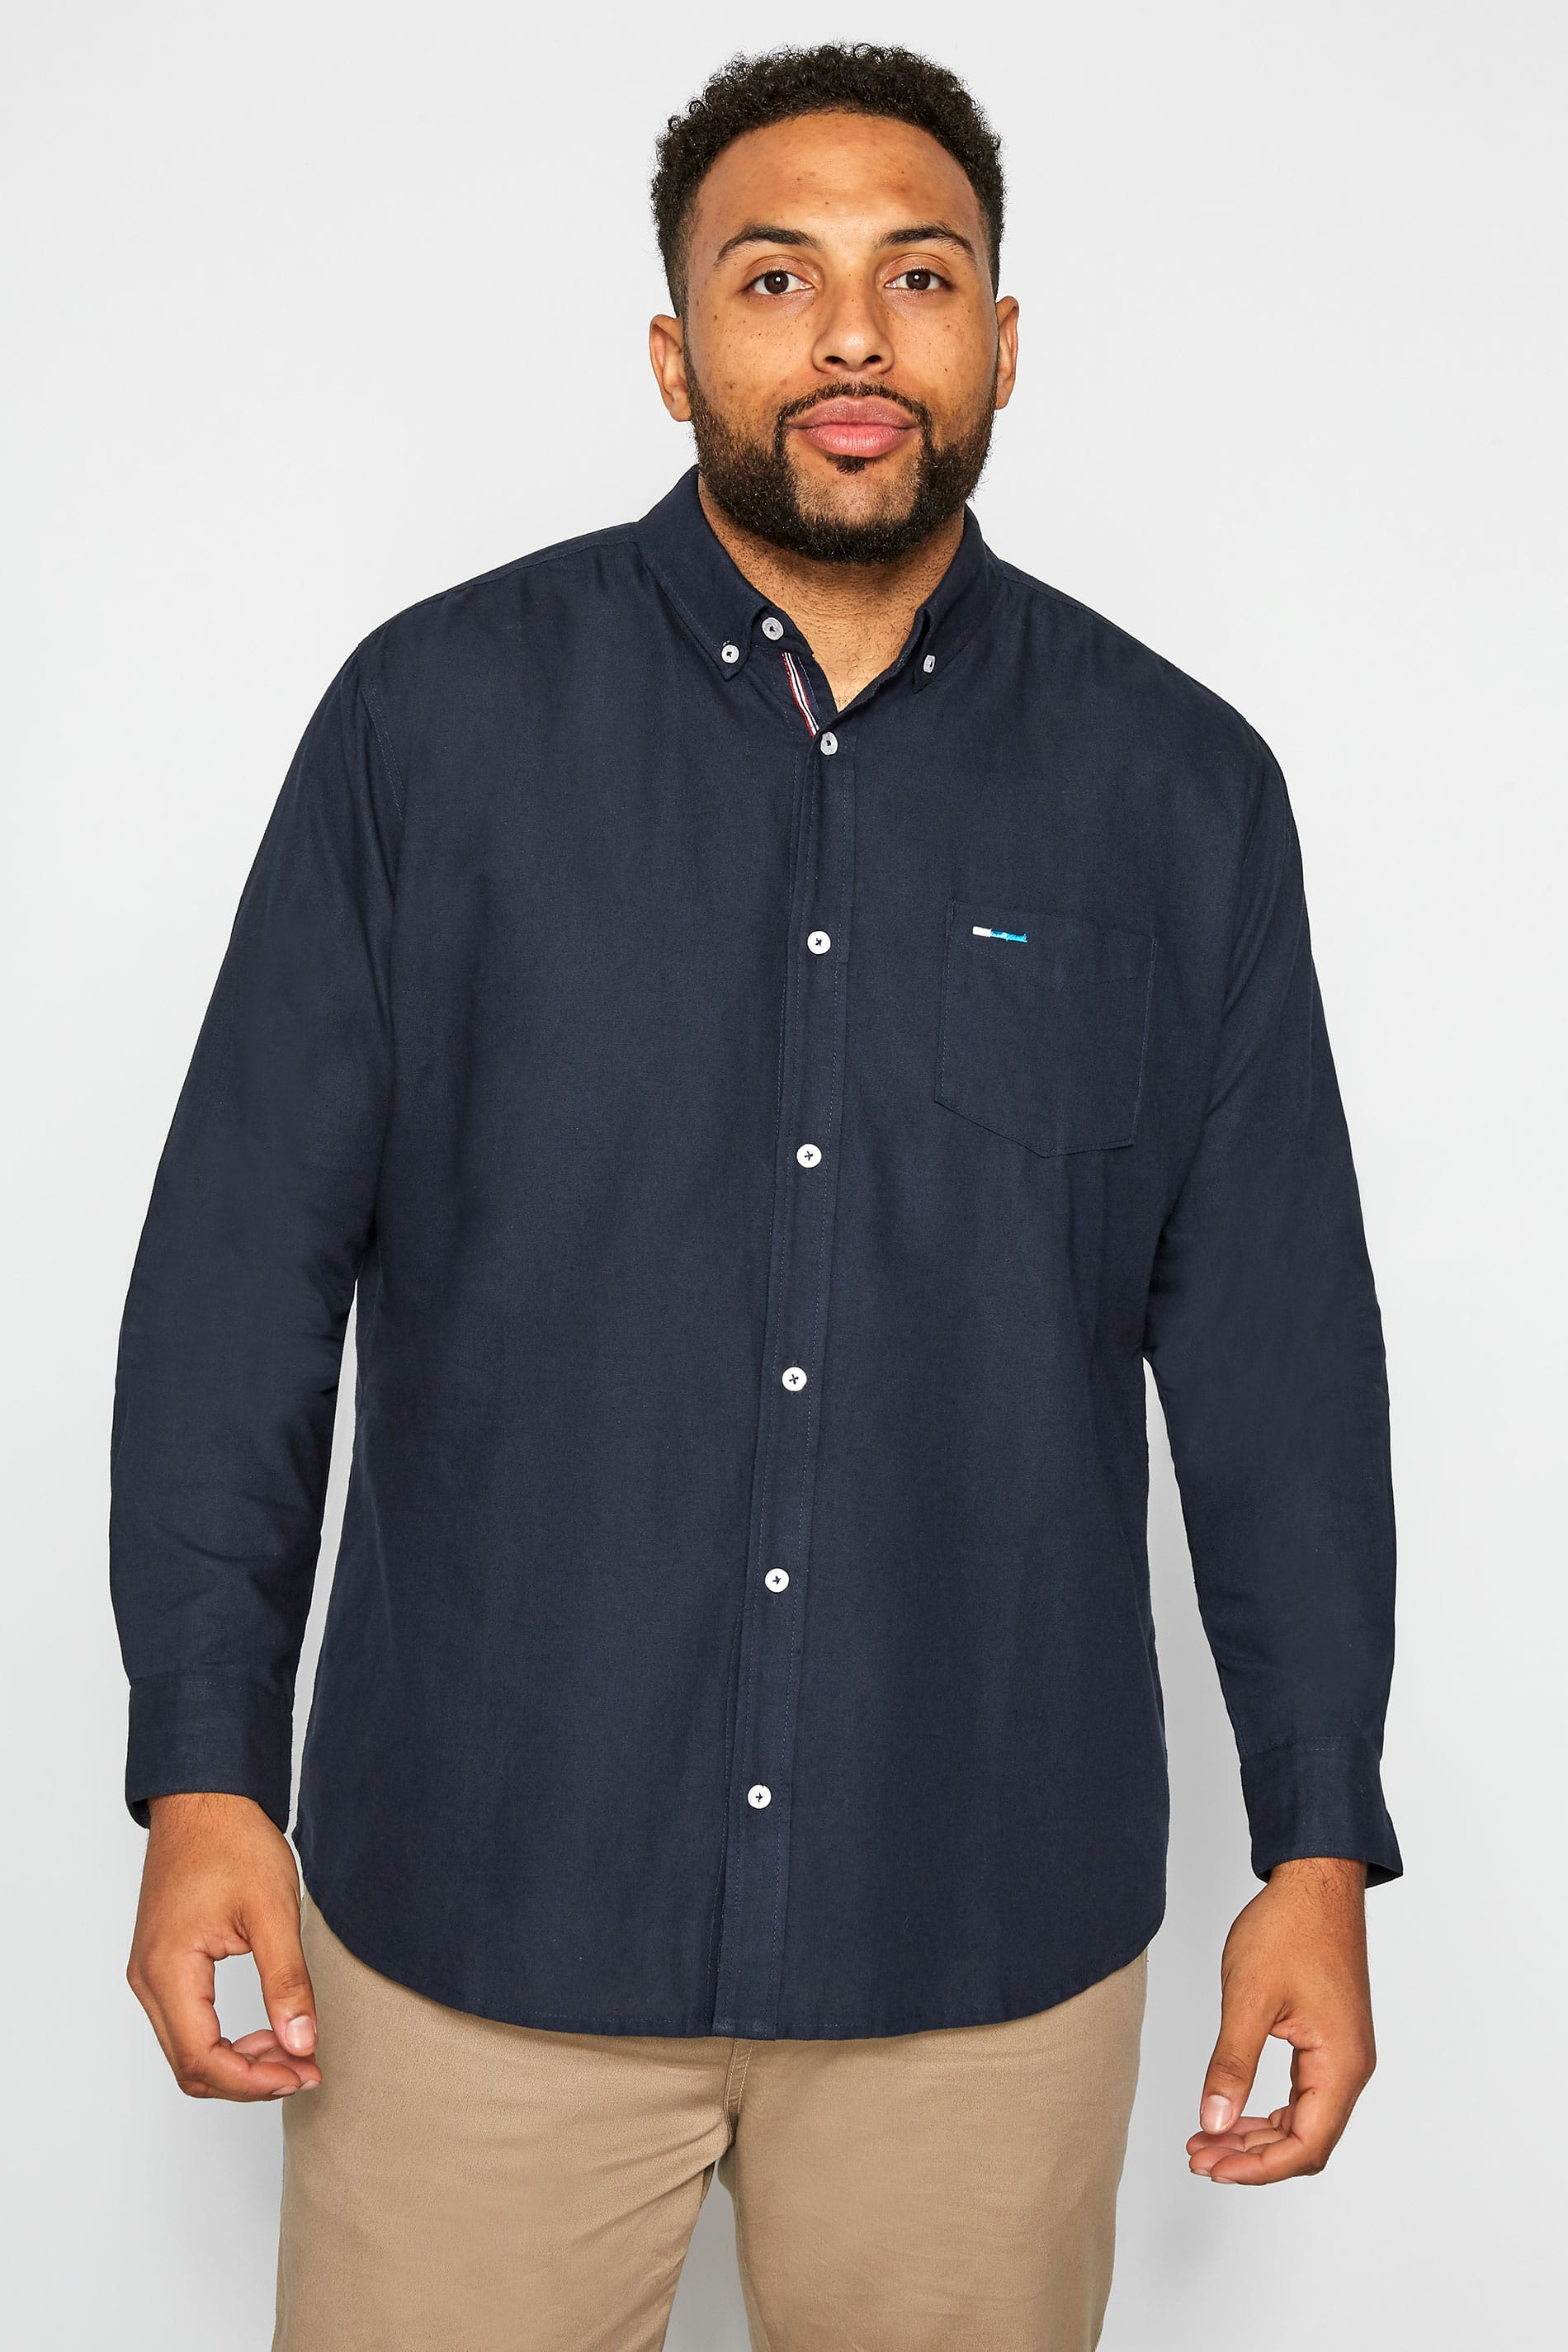 BadRhino Navy Cotton Long Sleeved Oxford Shirt